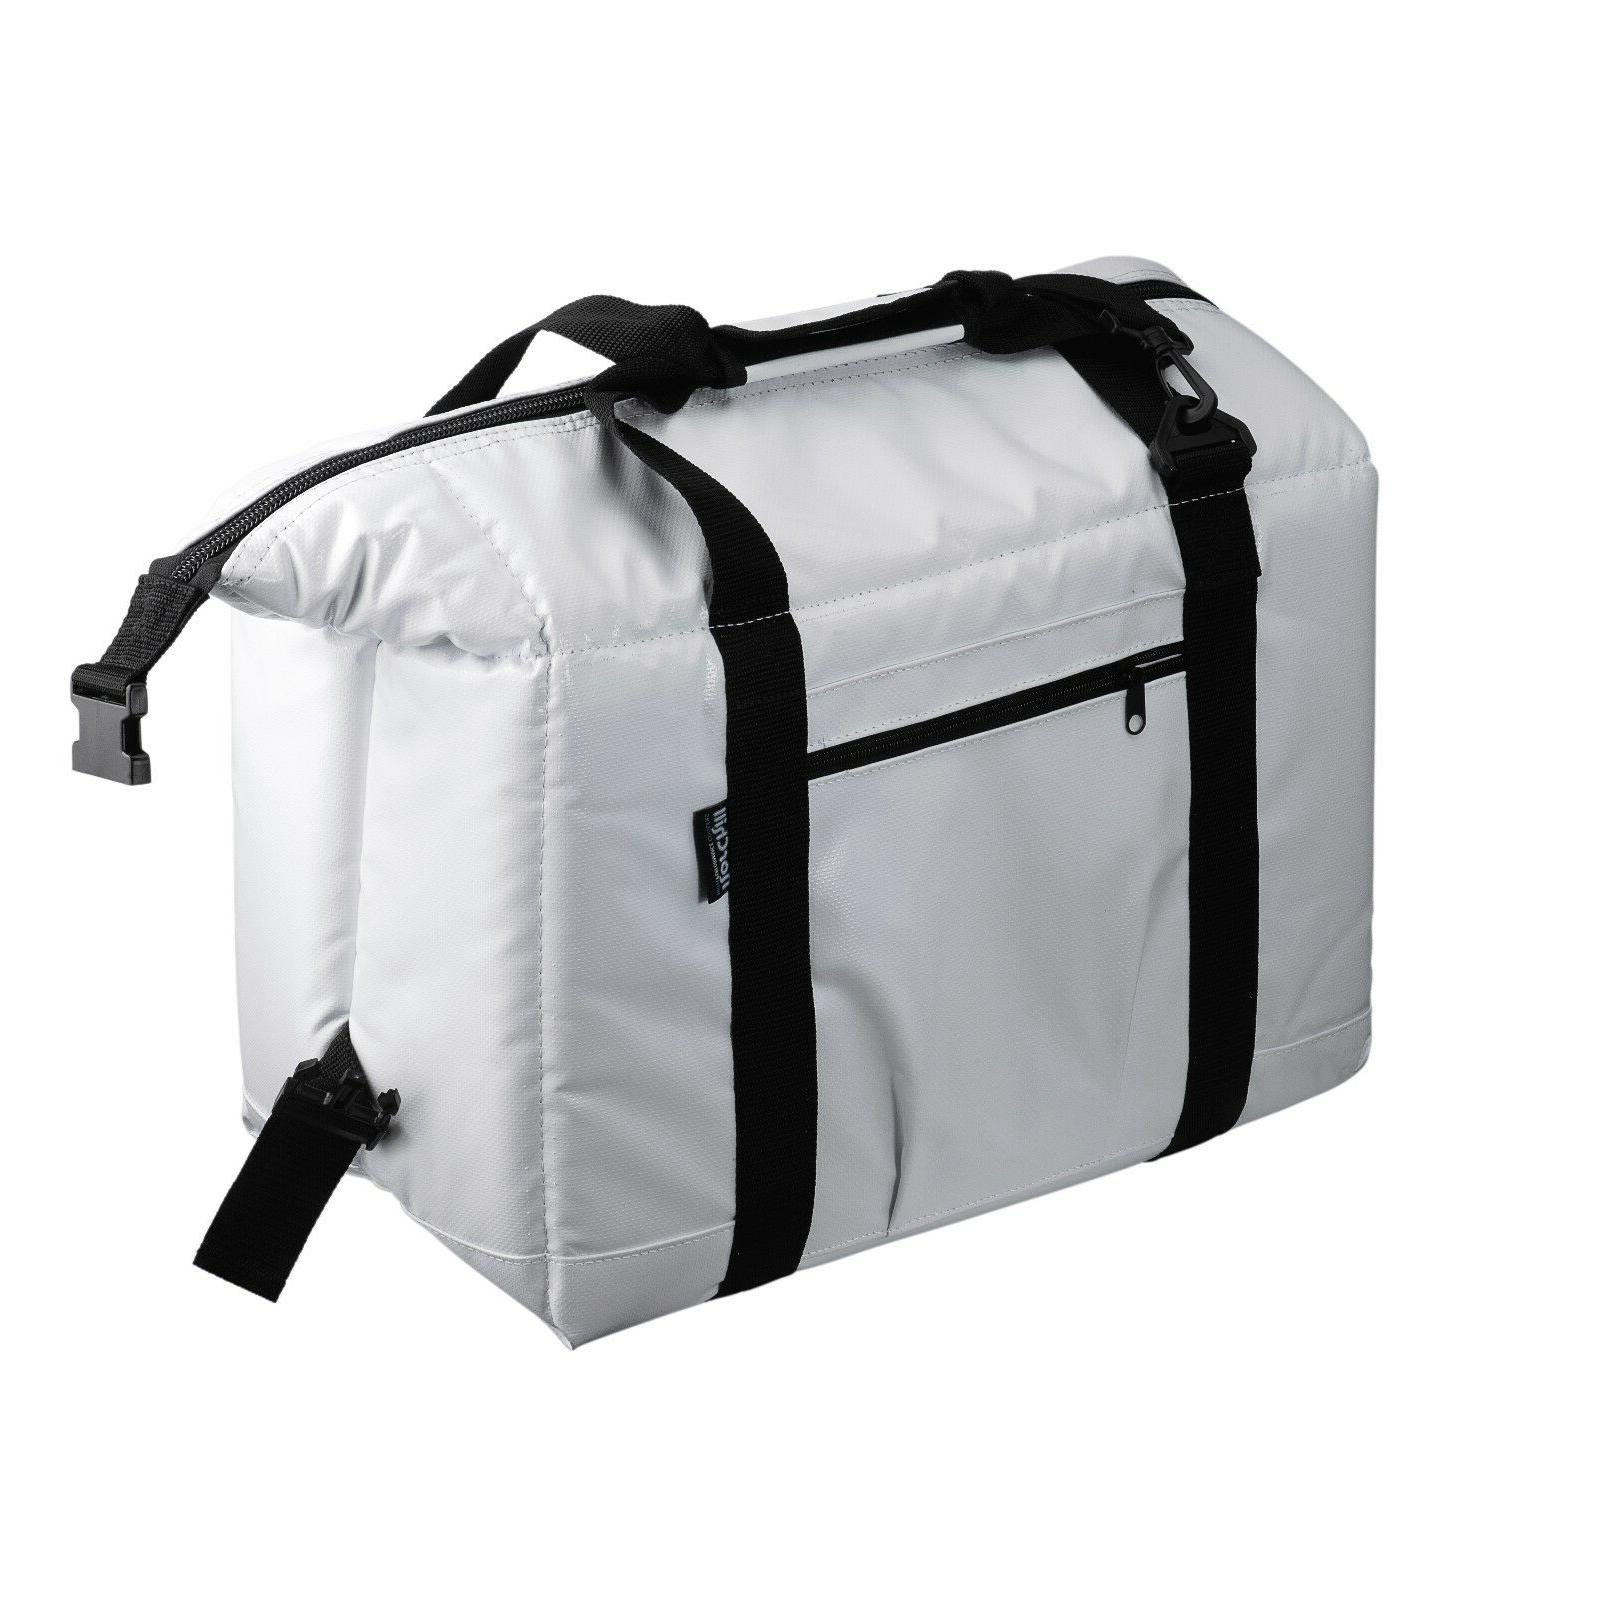 NorChill Soft Coolers - Marine Boatbag